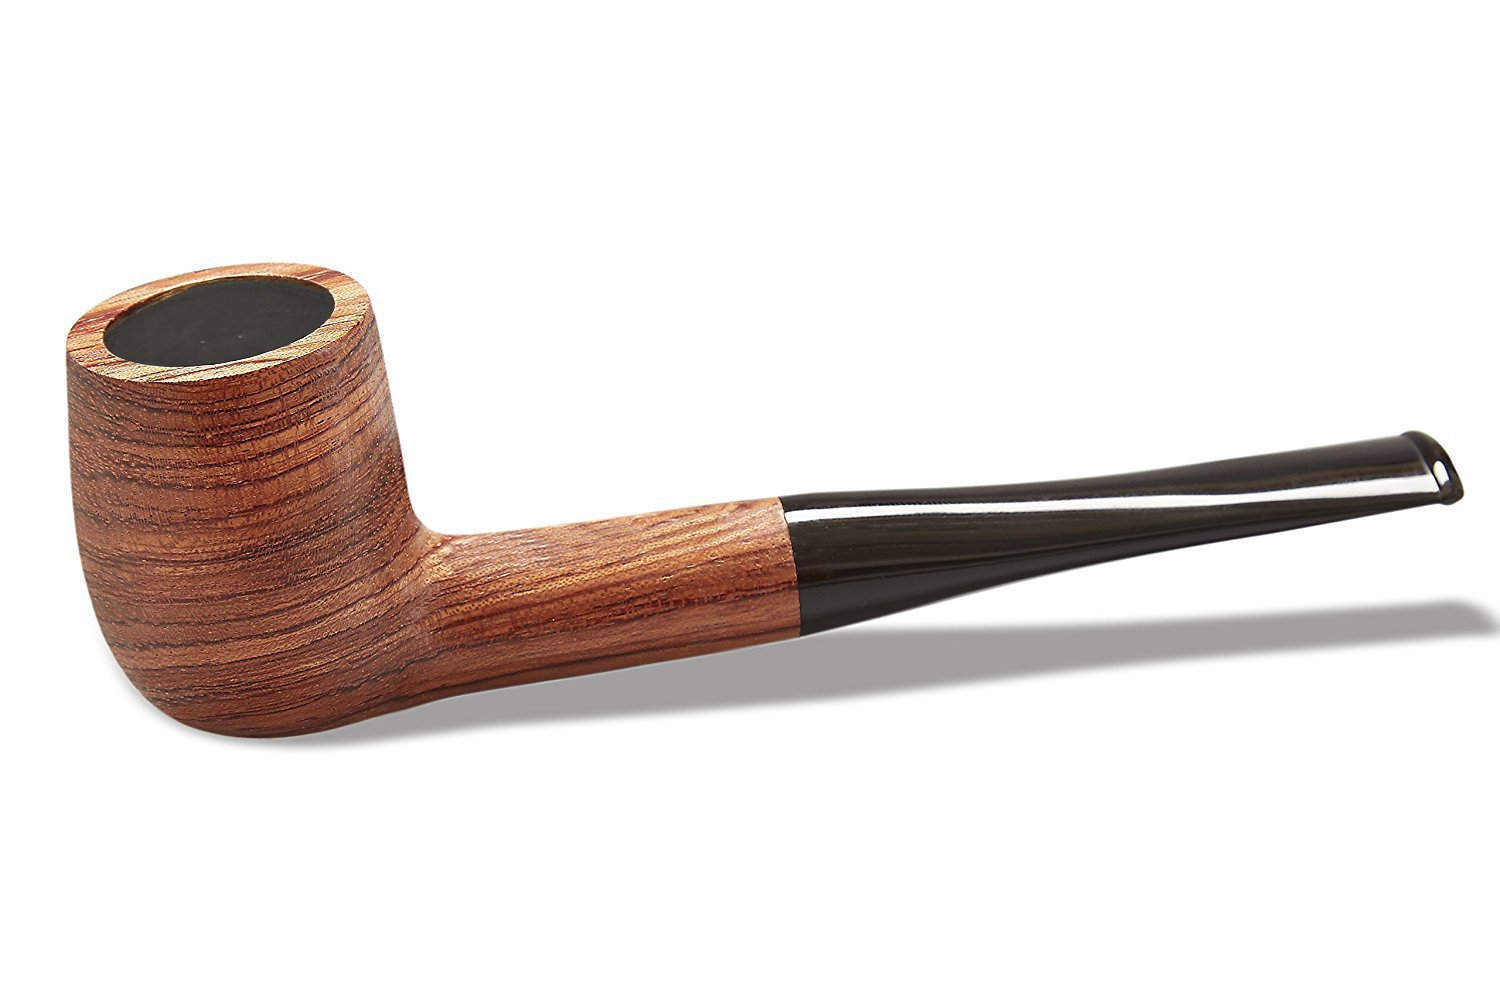 Smoking Pipe for Tobacco Wooden Pipe Handmade New Pipe FREE GIFT